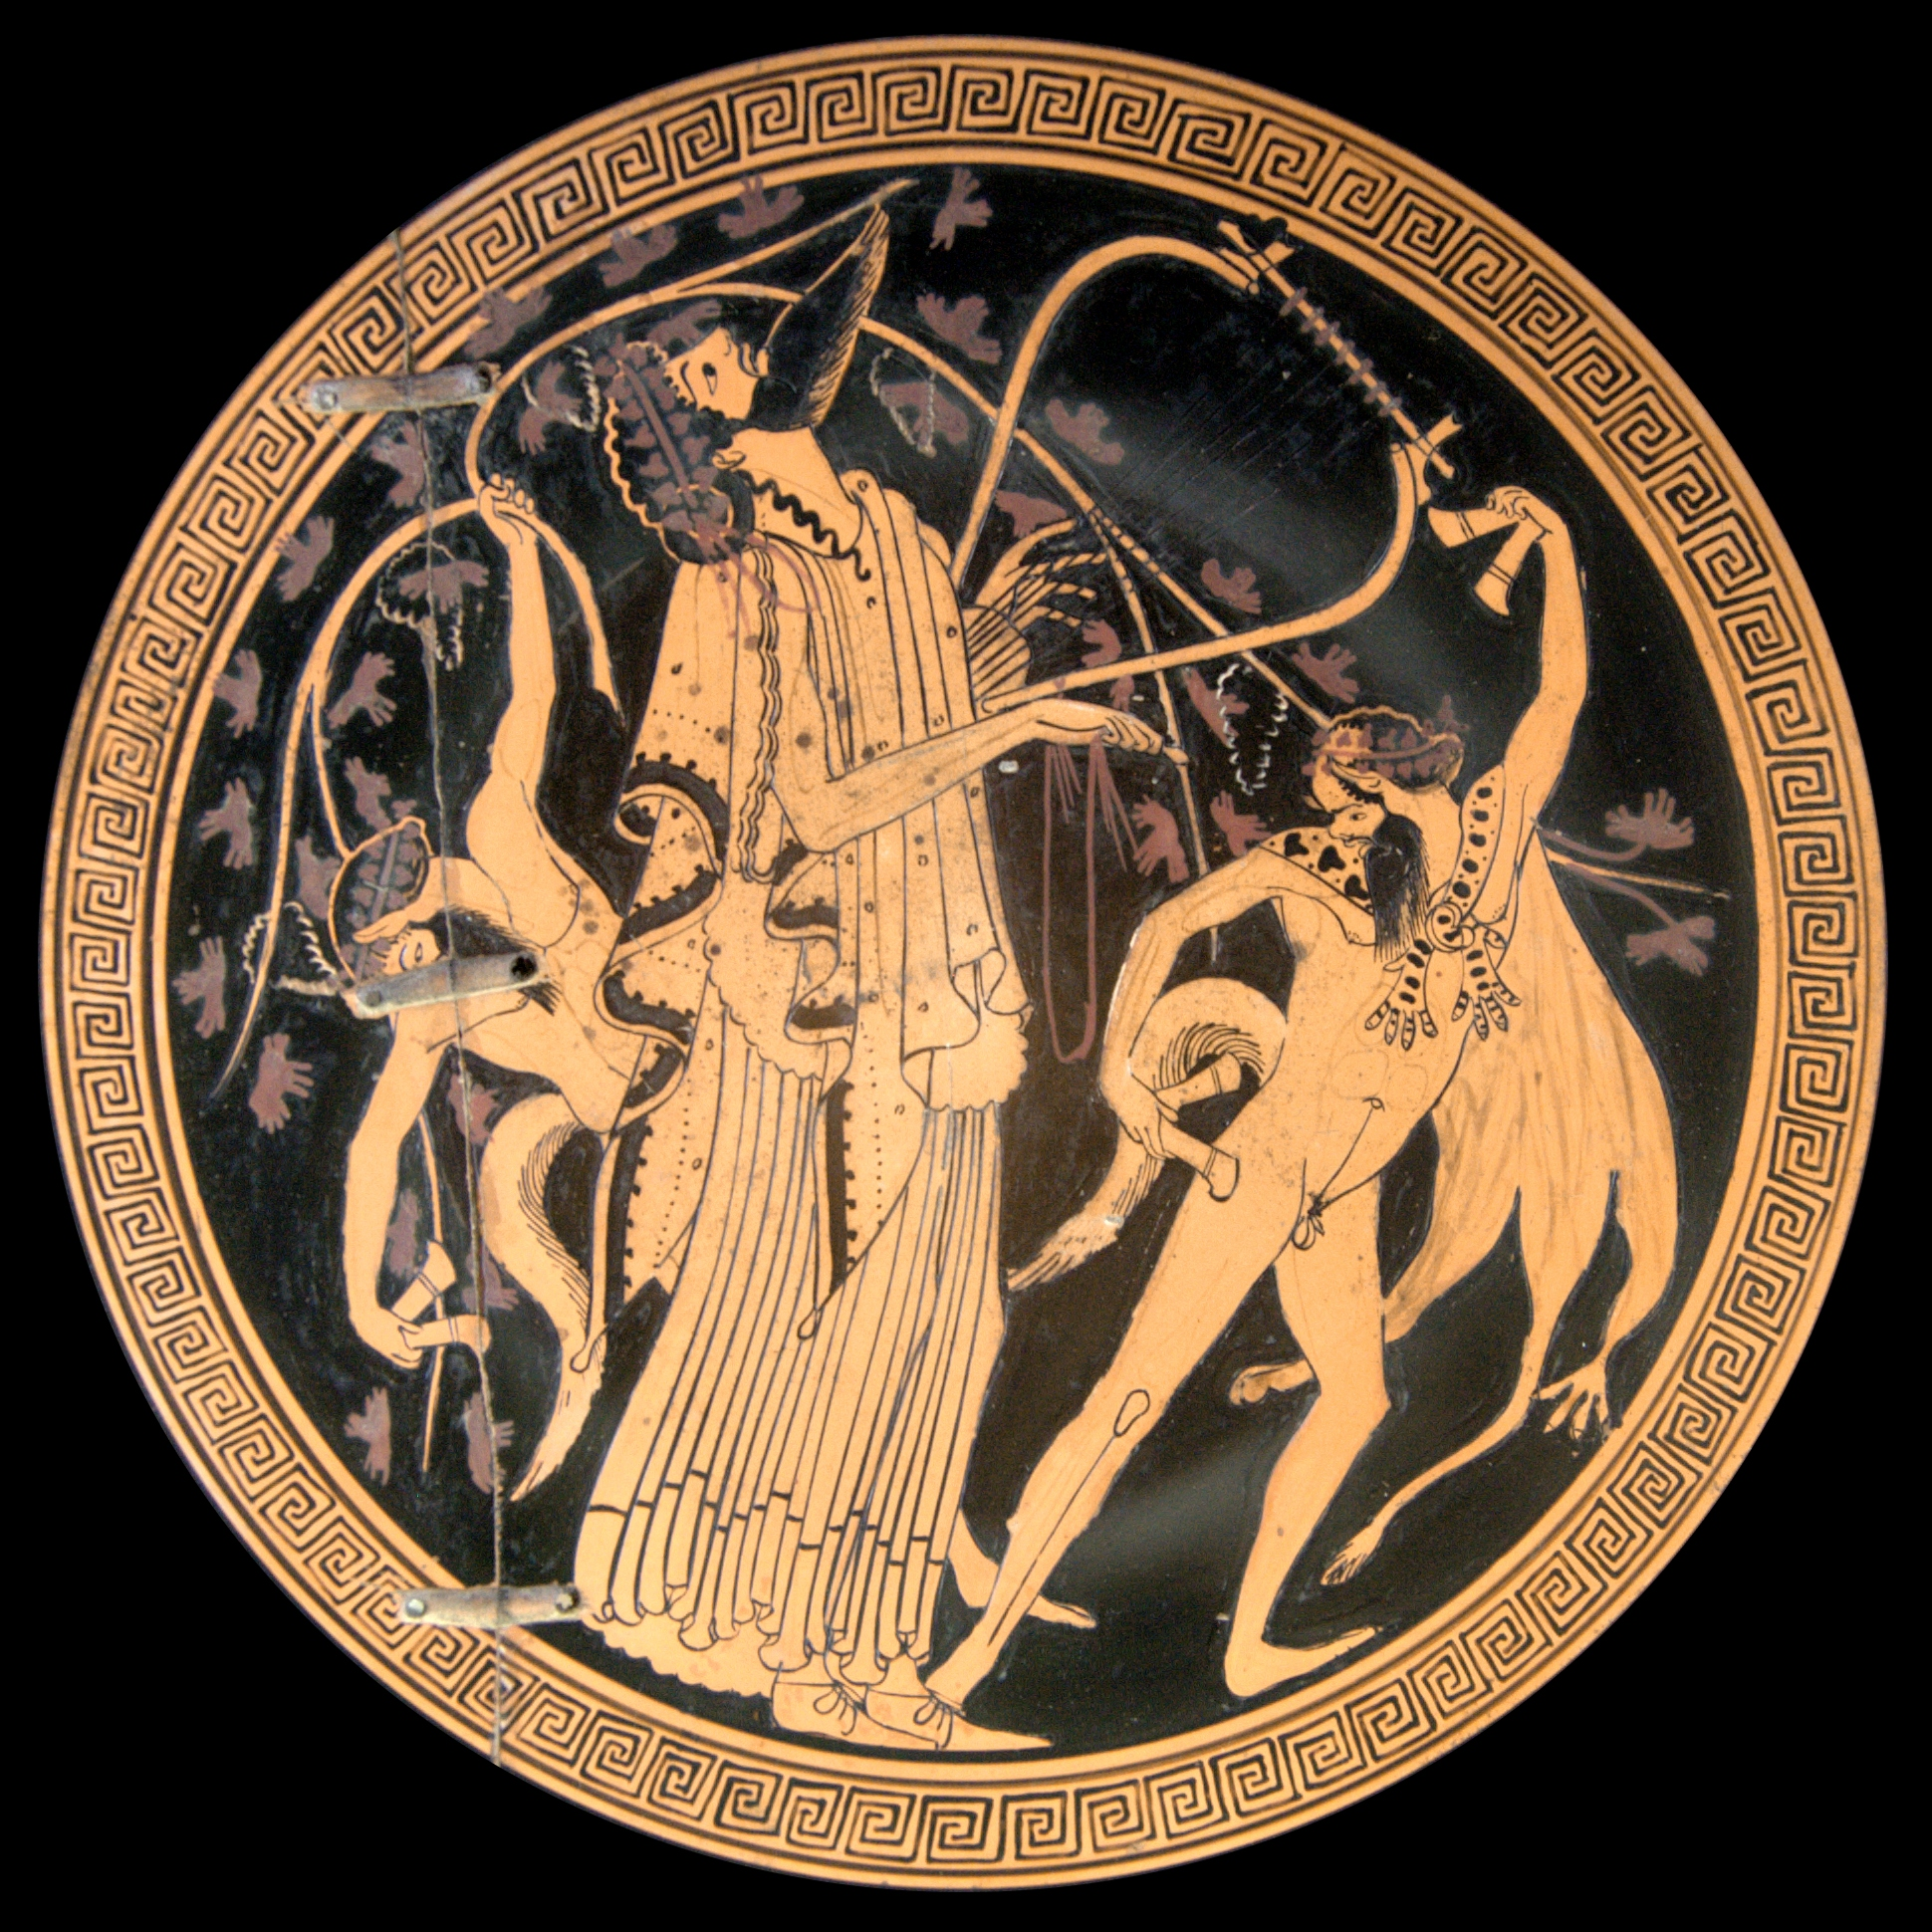 http://upload.wikimedia.org/wikipedia/commons/1/11/Dionysos_satyrs_Cdm_Paris_575.jpg